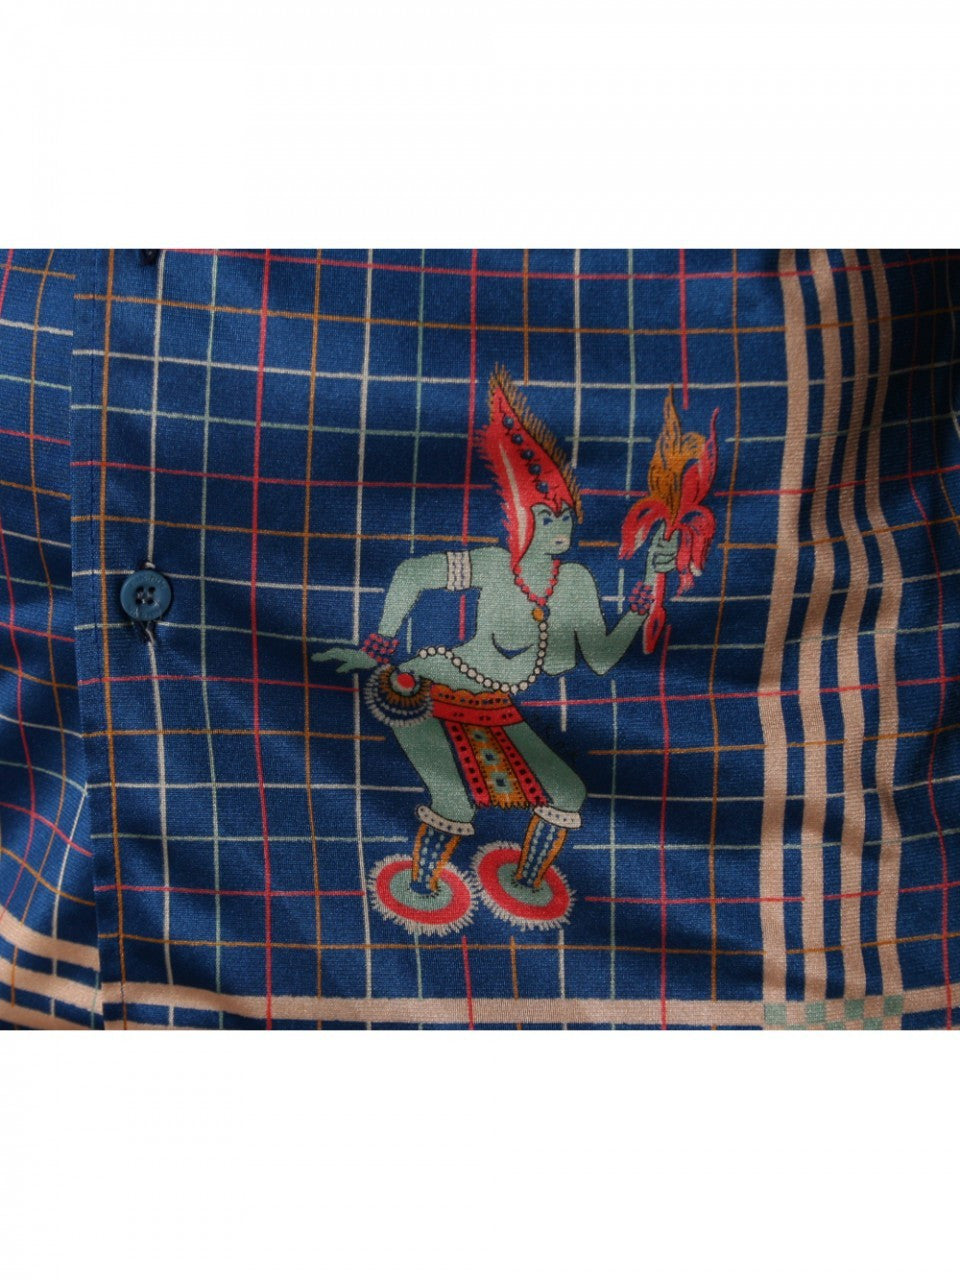 Nik Nik 1970s Men's Blue Shirt